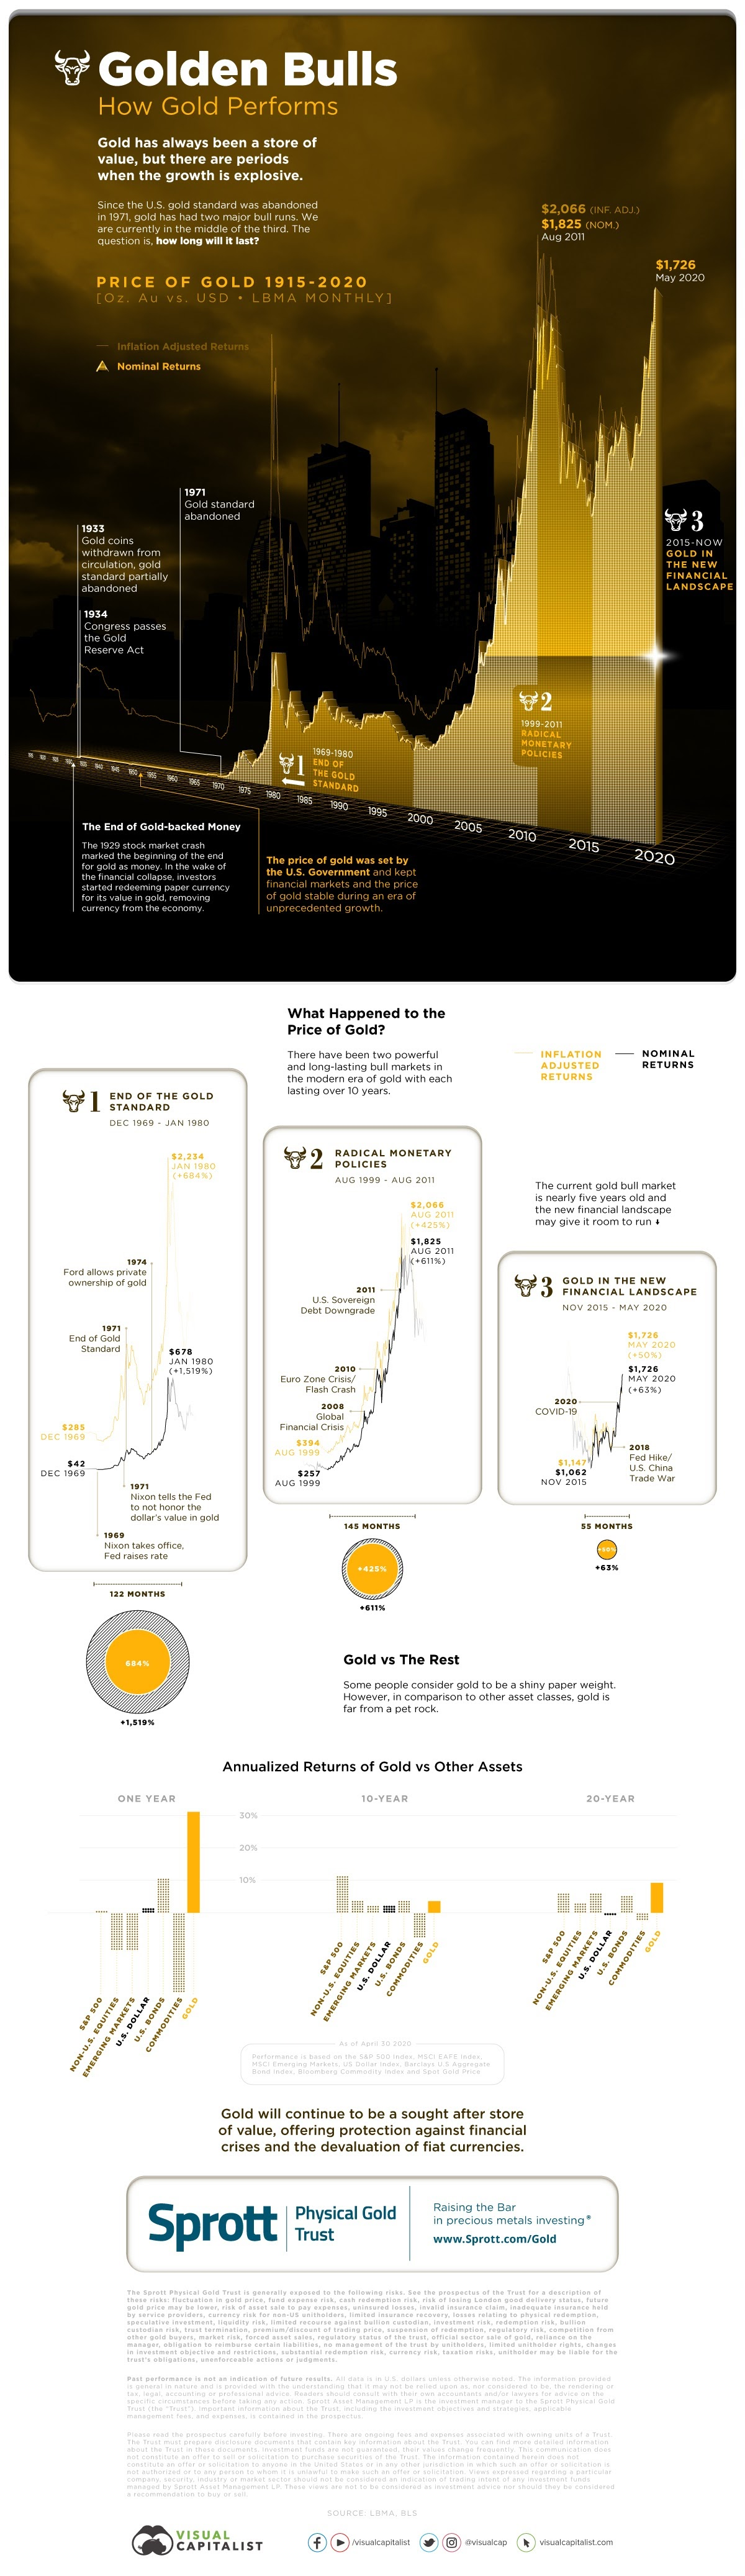 Golden Bulls Visualizing the Price of Gold from 1915-2020 #infographic